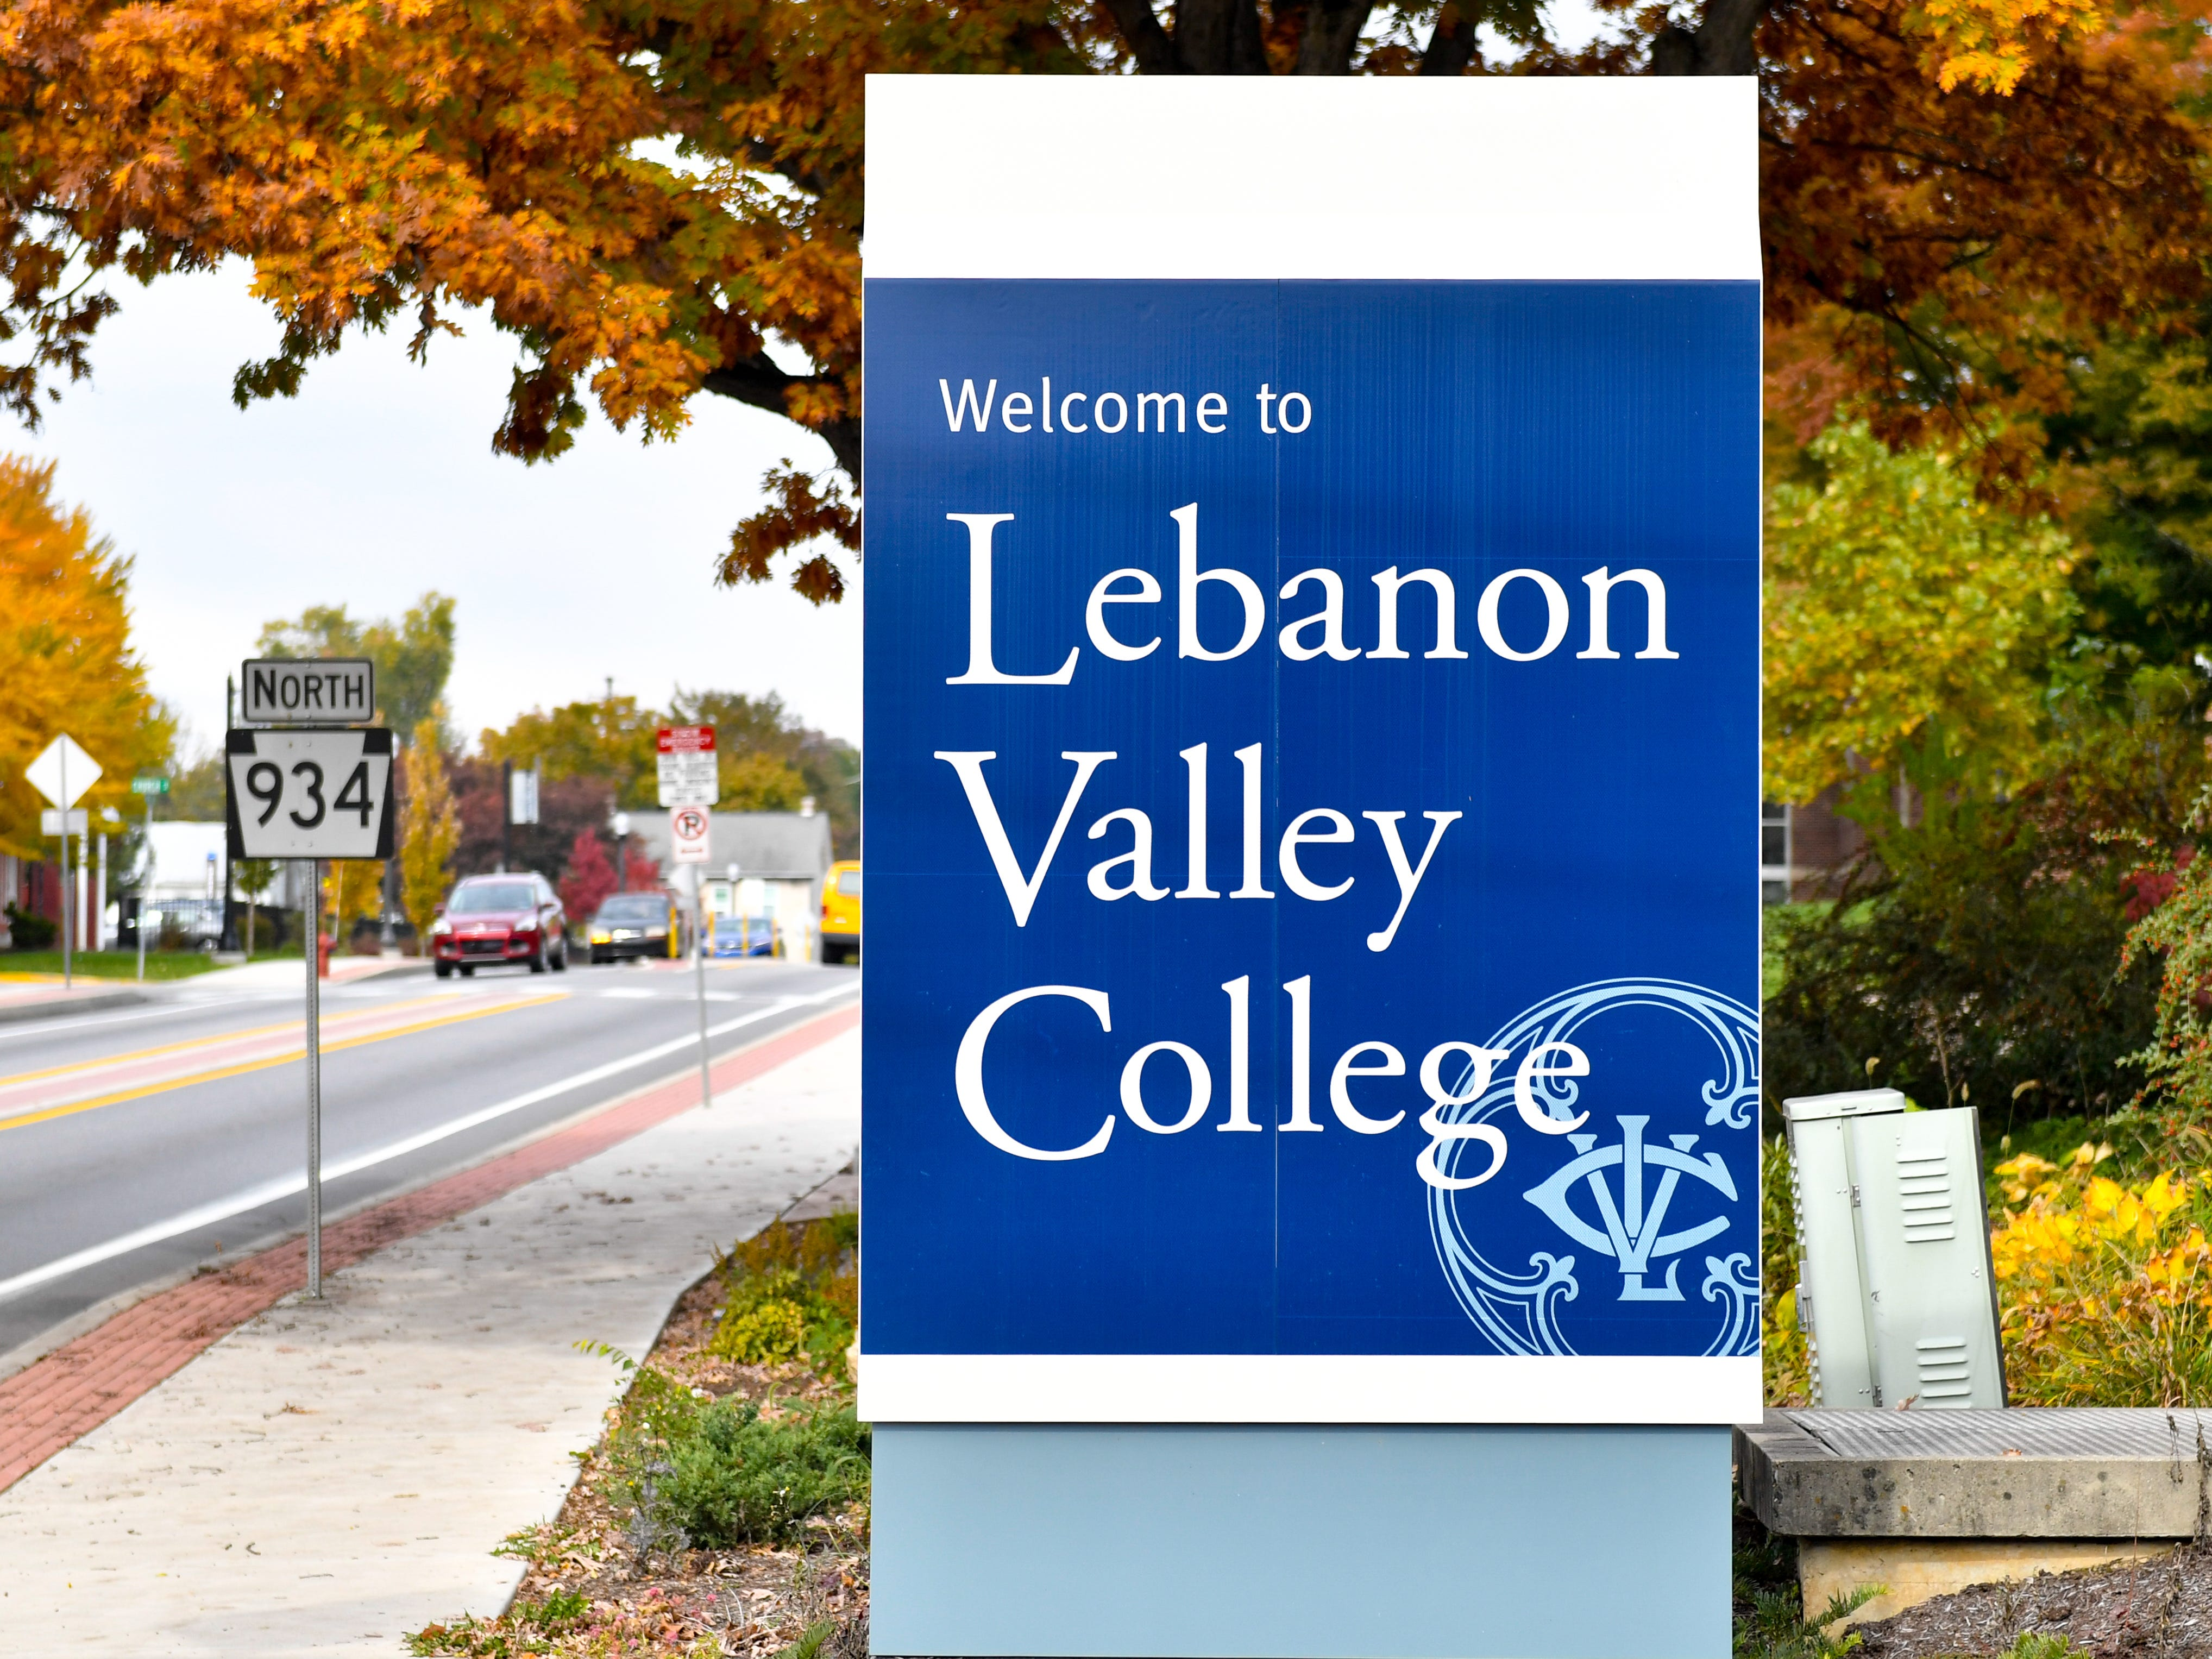 In the spring of 2018, Lebanon Valley College launched the first varsity Esports team in Pennsylvania. They compete with schools all over the United States including the University of California, Berkeley and the University of South Carolina.